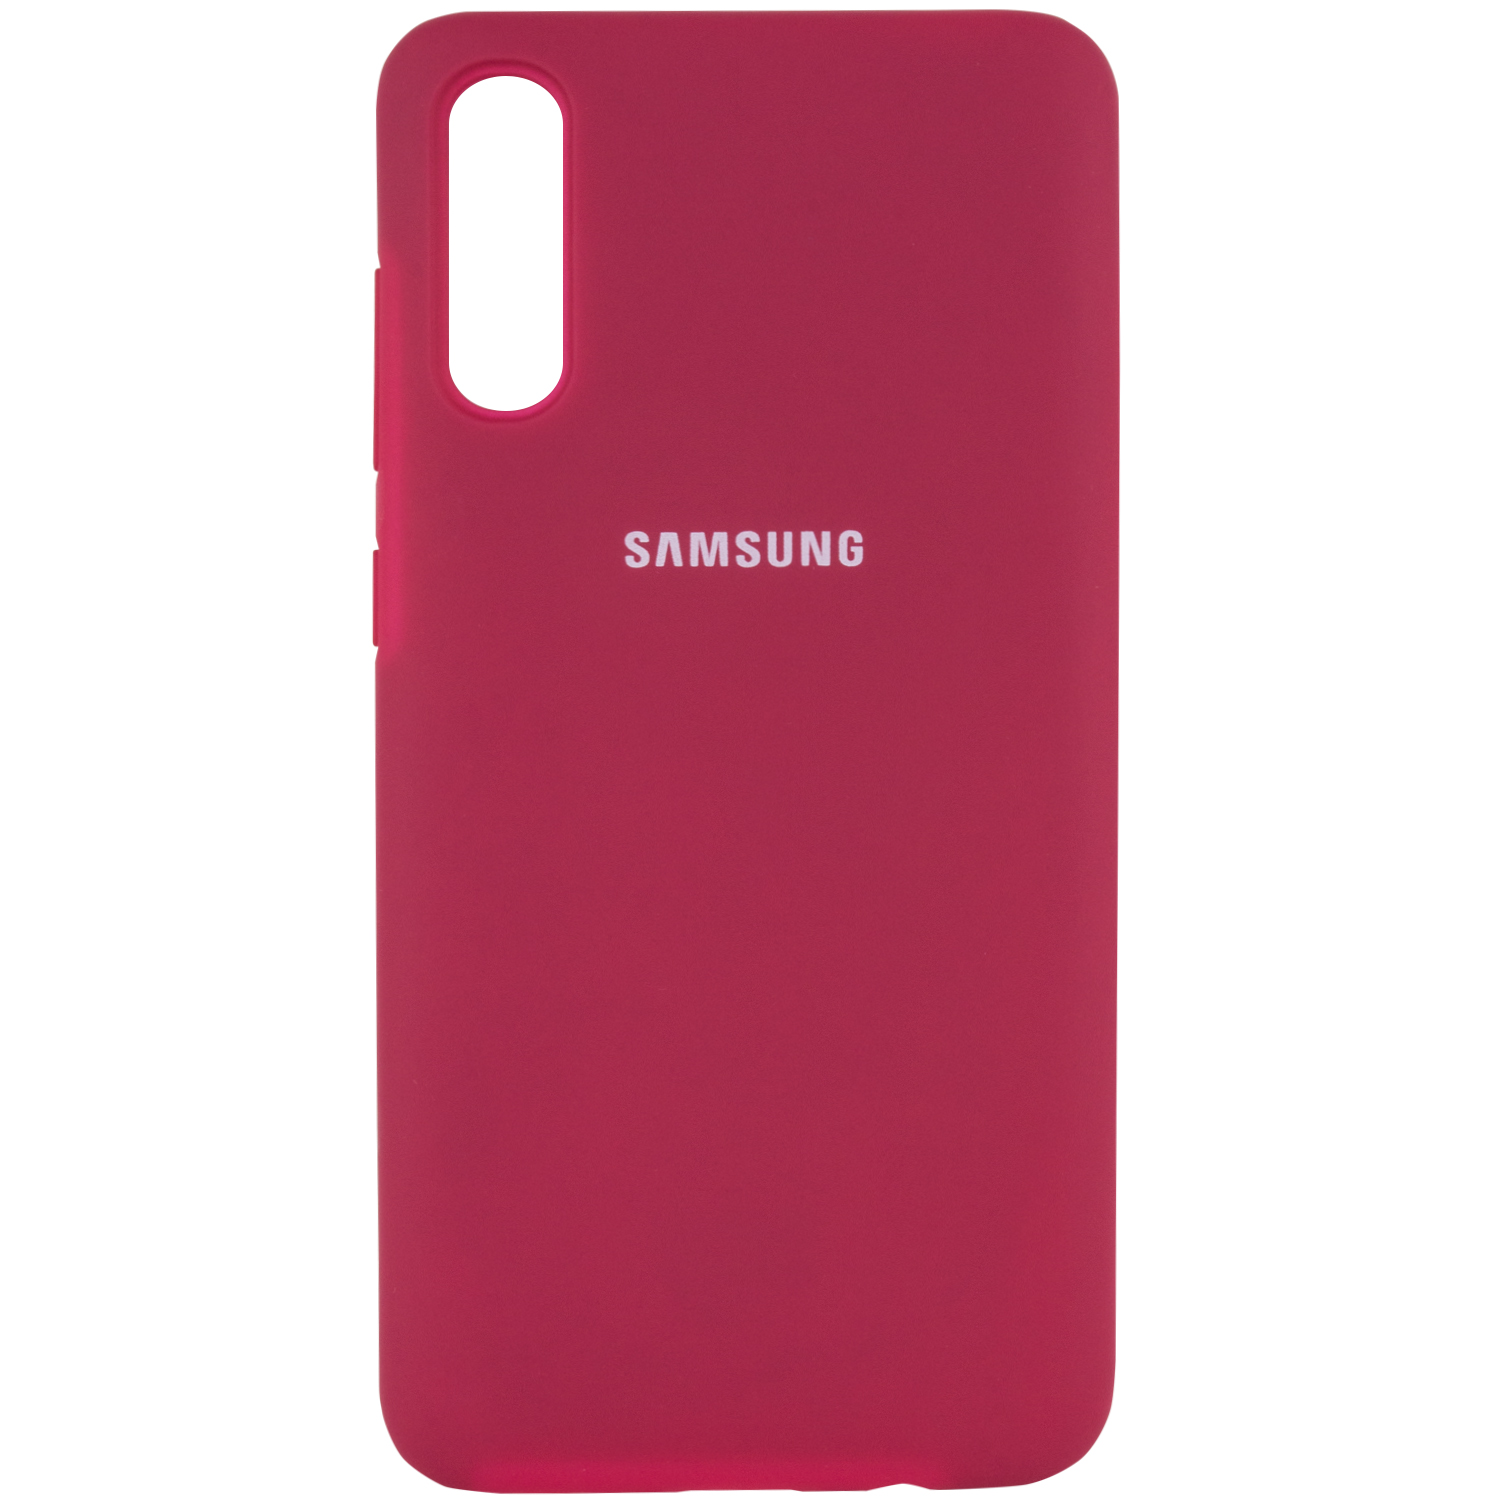 Чехол Silicone Case Full Protective для Samsung Galaxy A70 (A705F) (Розовый / Hot Pink)